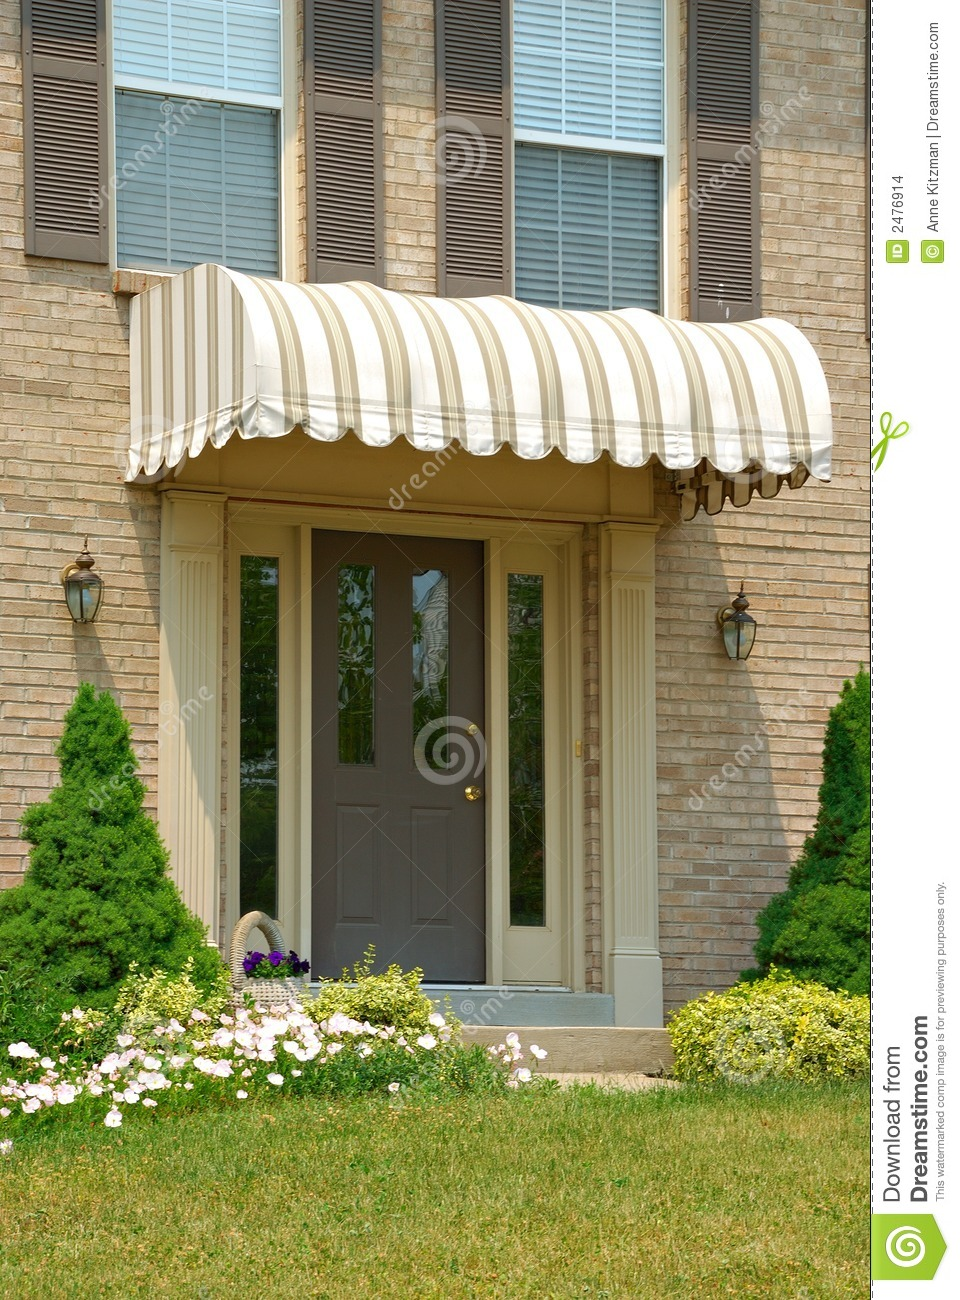 Front Door Awning Stock Photo Image Of Awning Frontdoor